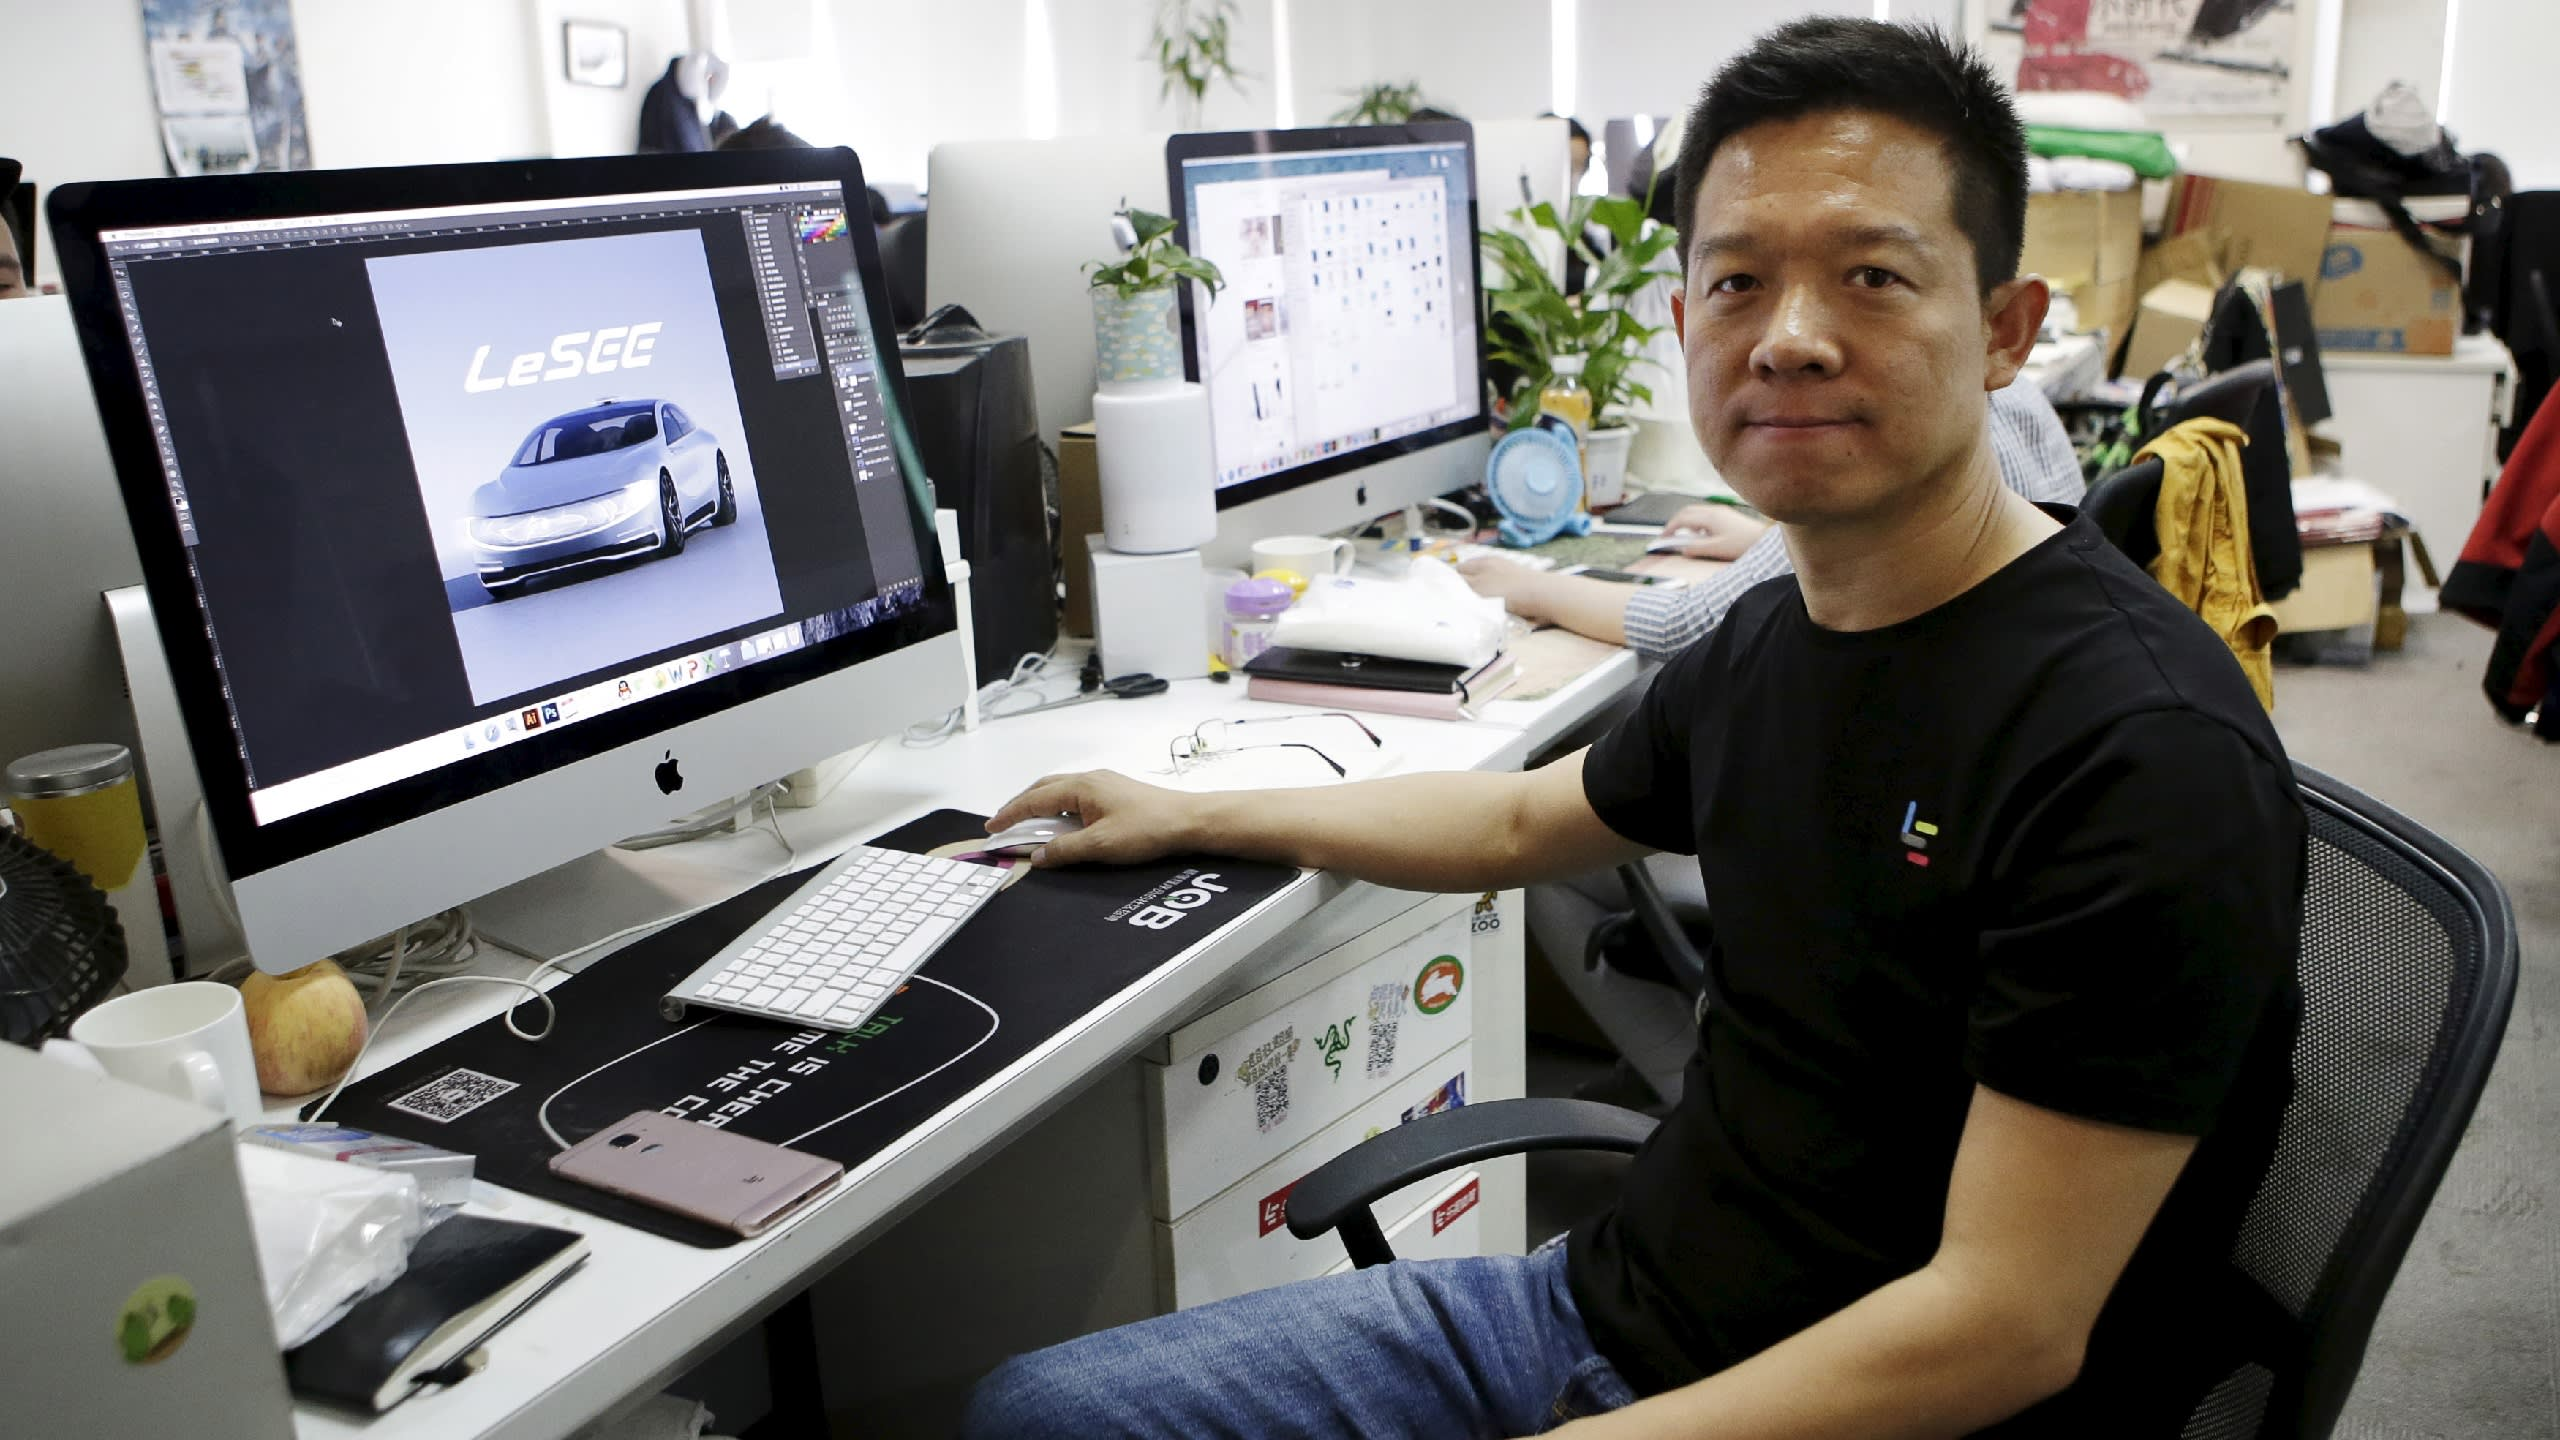 Leshi founder and ex-CEO Jia Yueting's electric-car ambitions were part of an expansion that left the company pinched for funds.